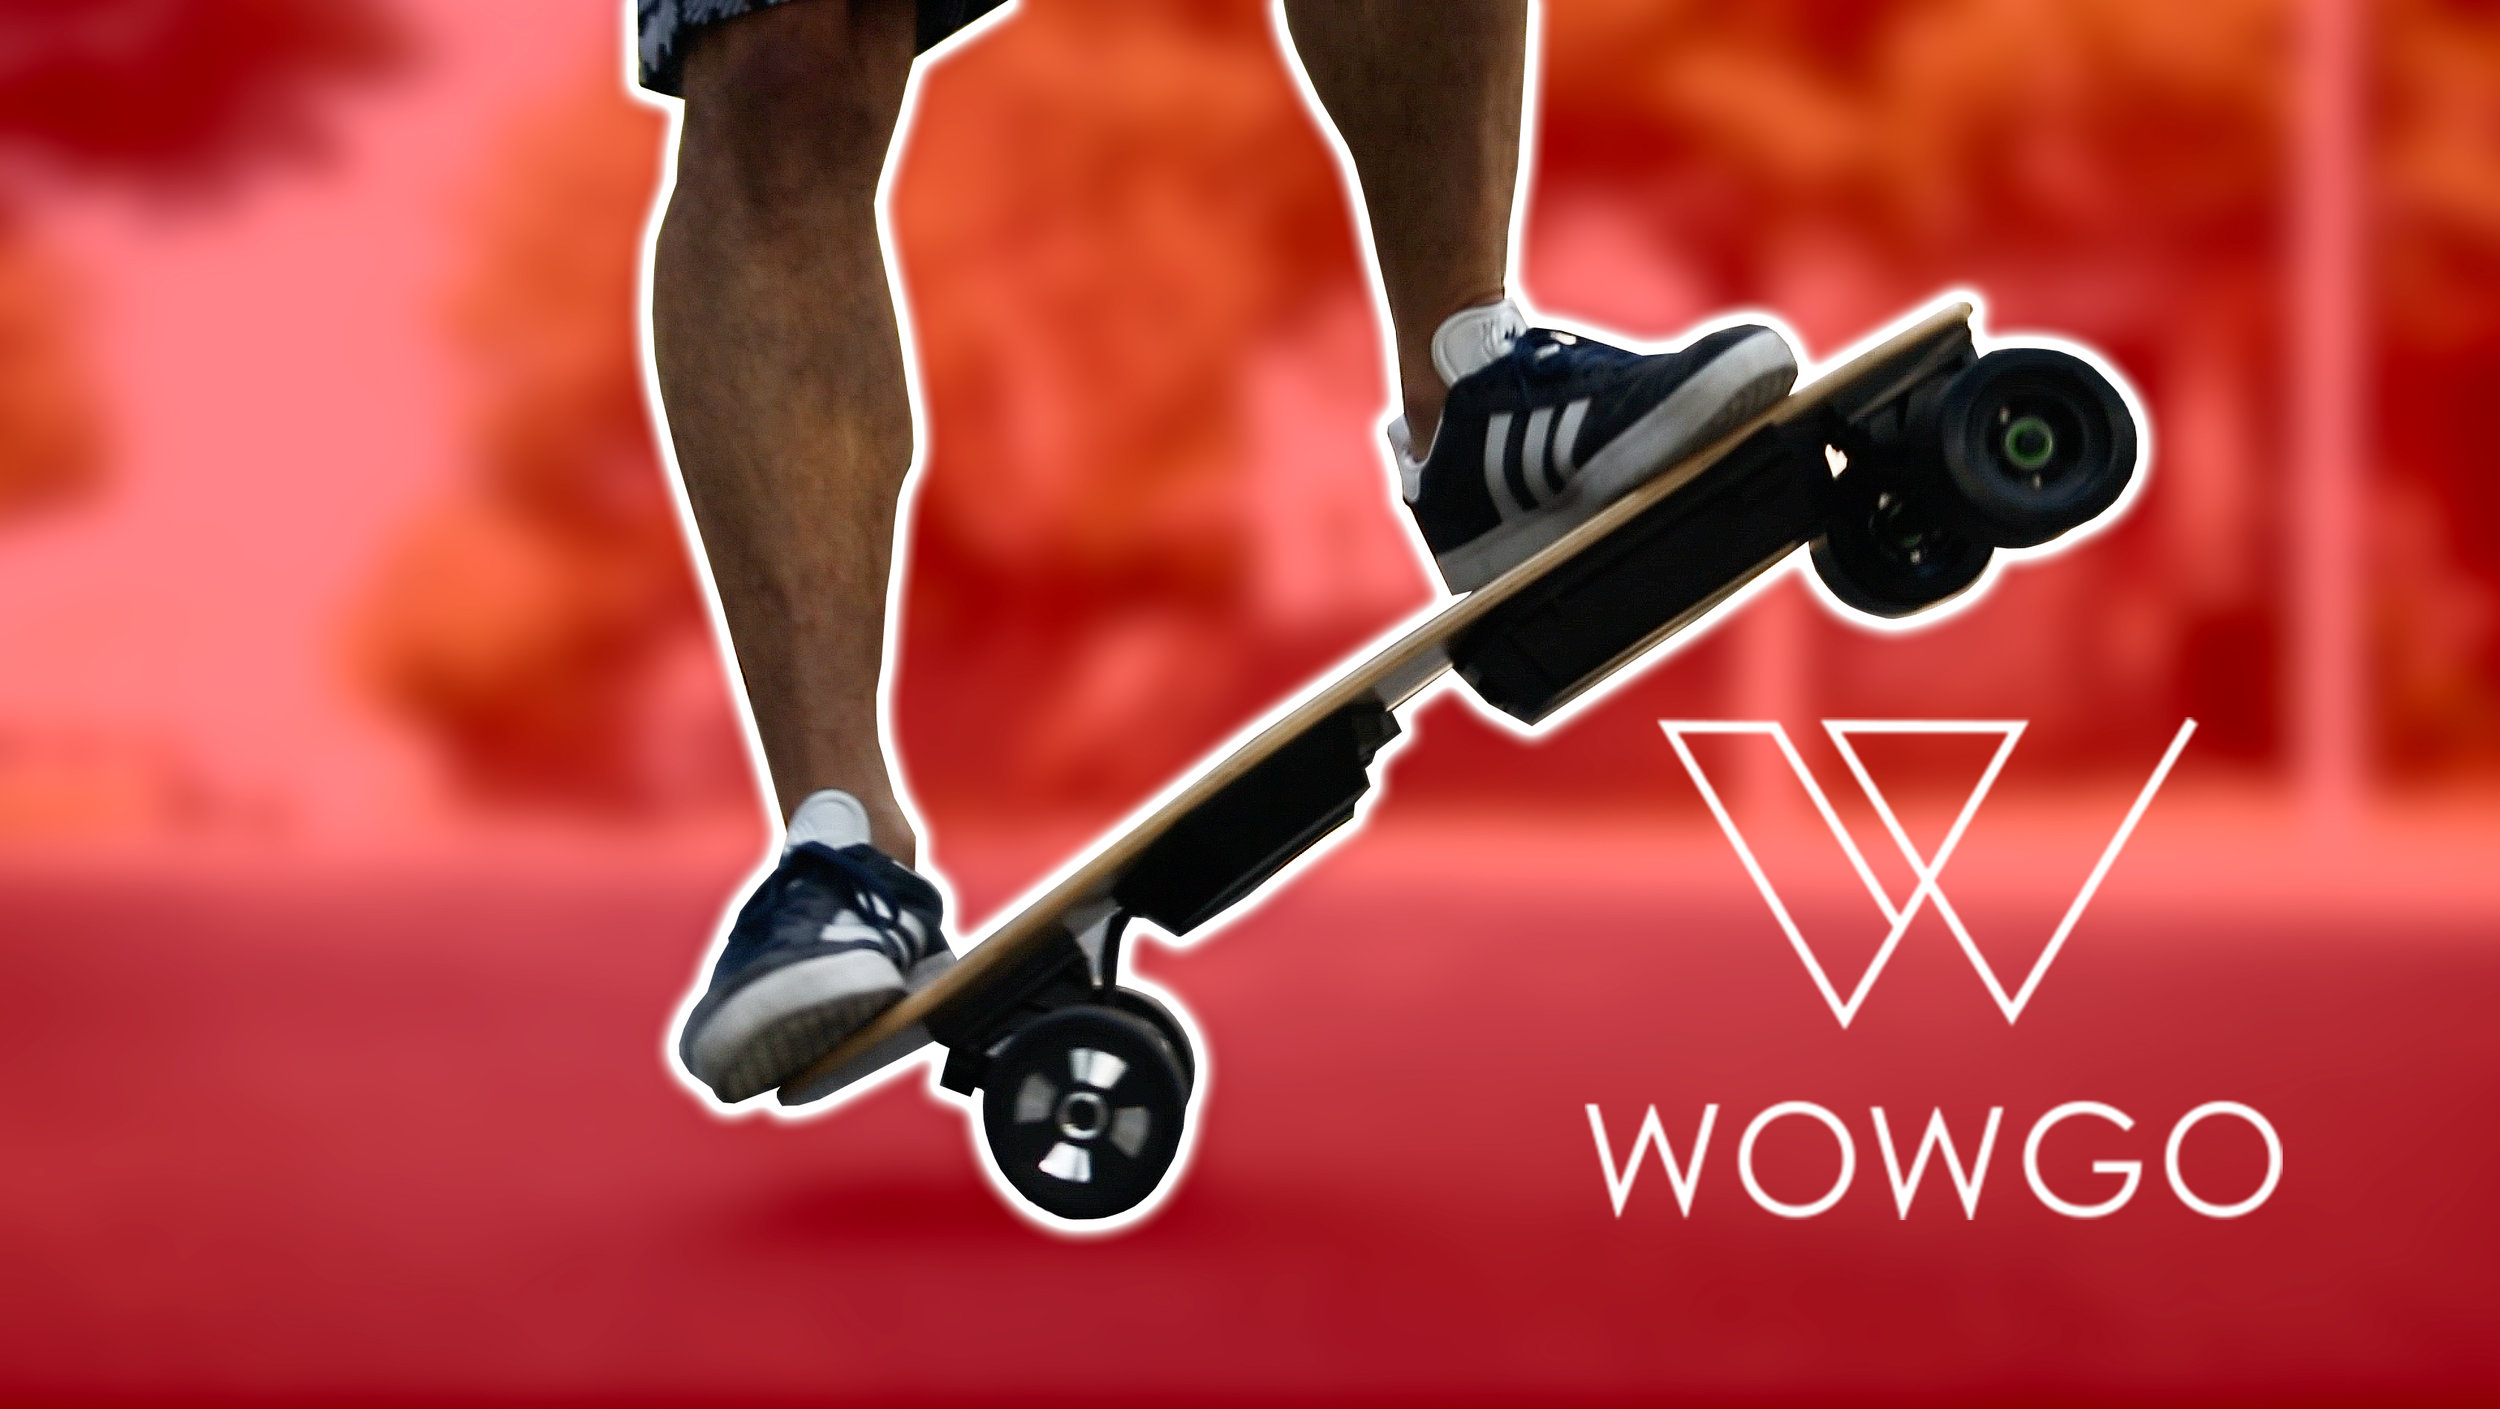 wowgo discount code